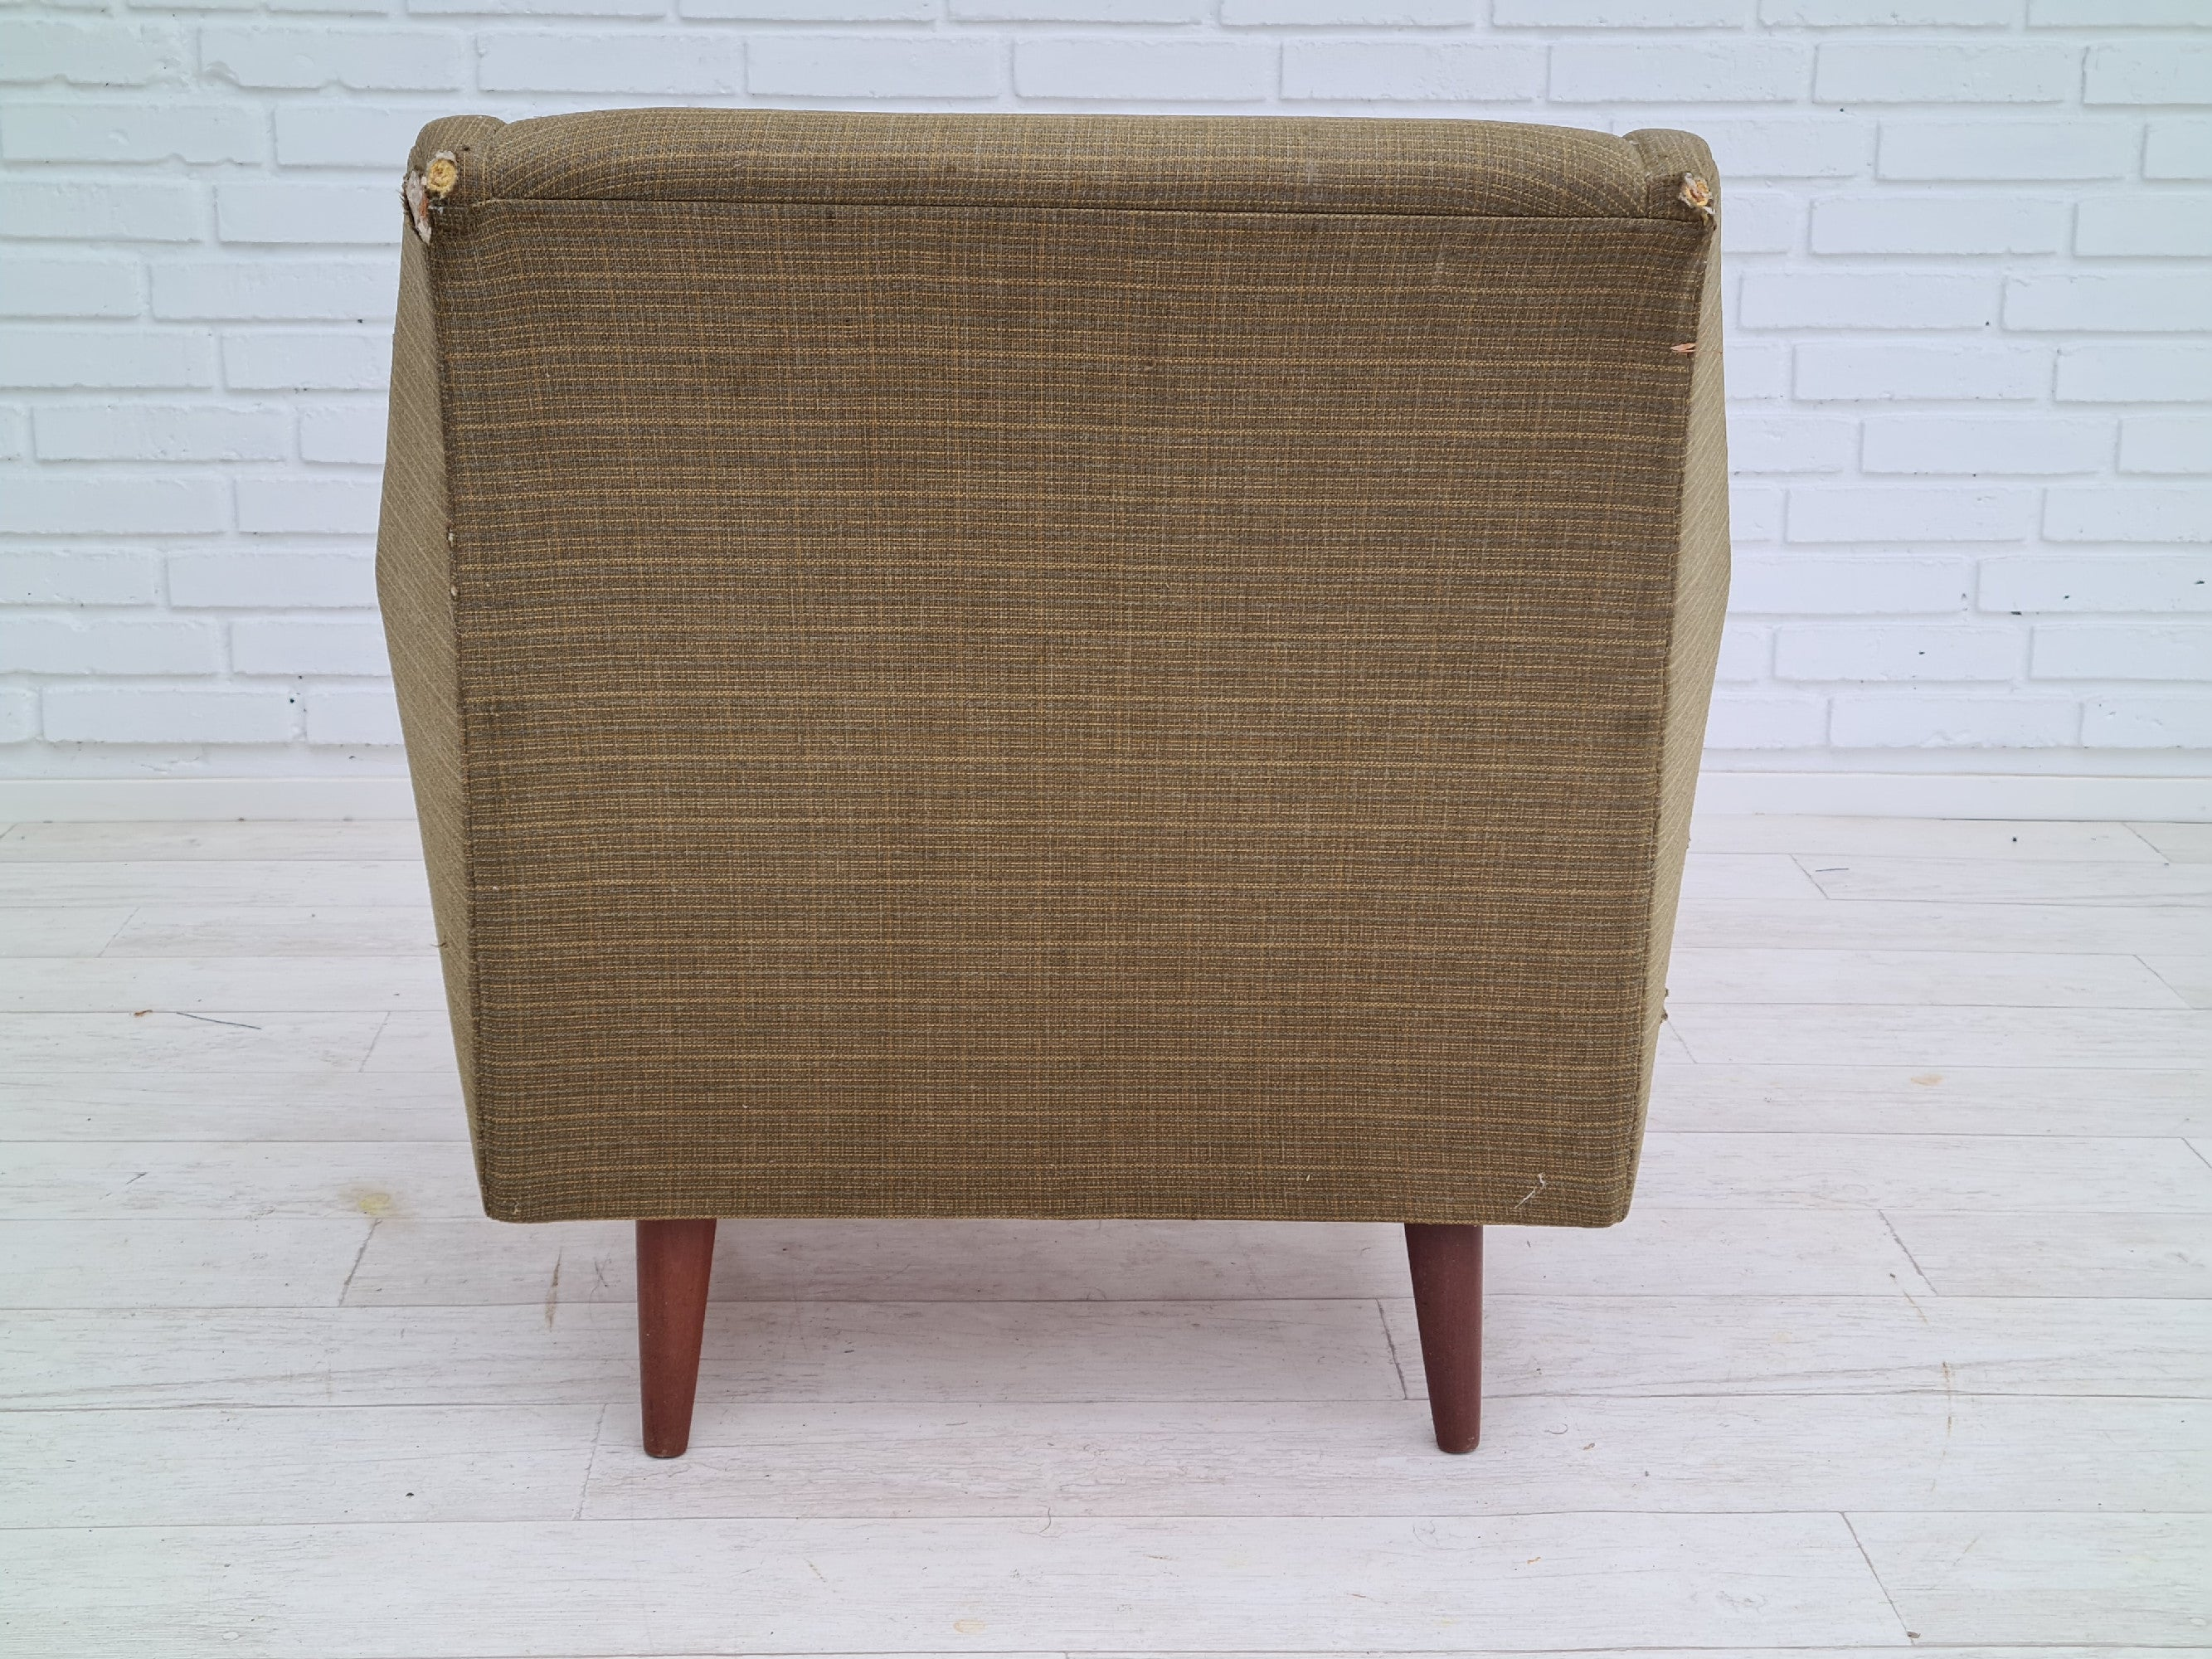 Totally renovated Danish armchair, 70s, SQUARE furniture wool